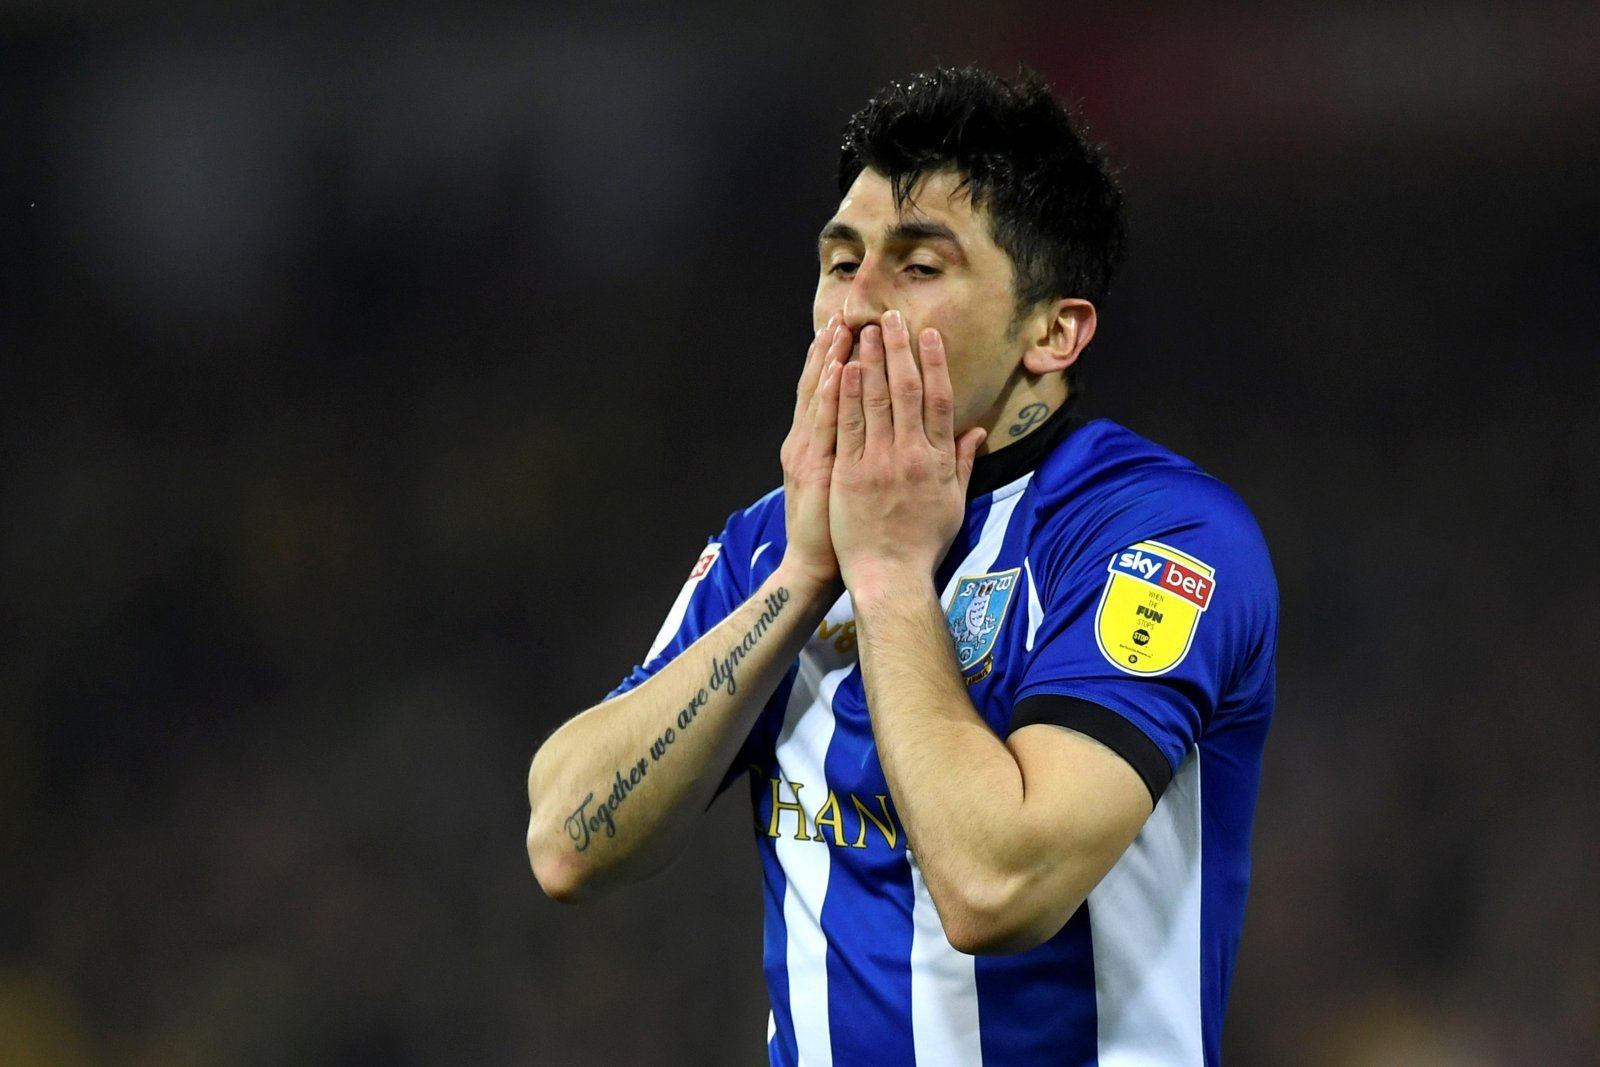 Sheffield Wednesday: Fernando Forestieri available for Cardiff match, Tom Lees out